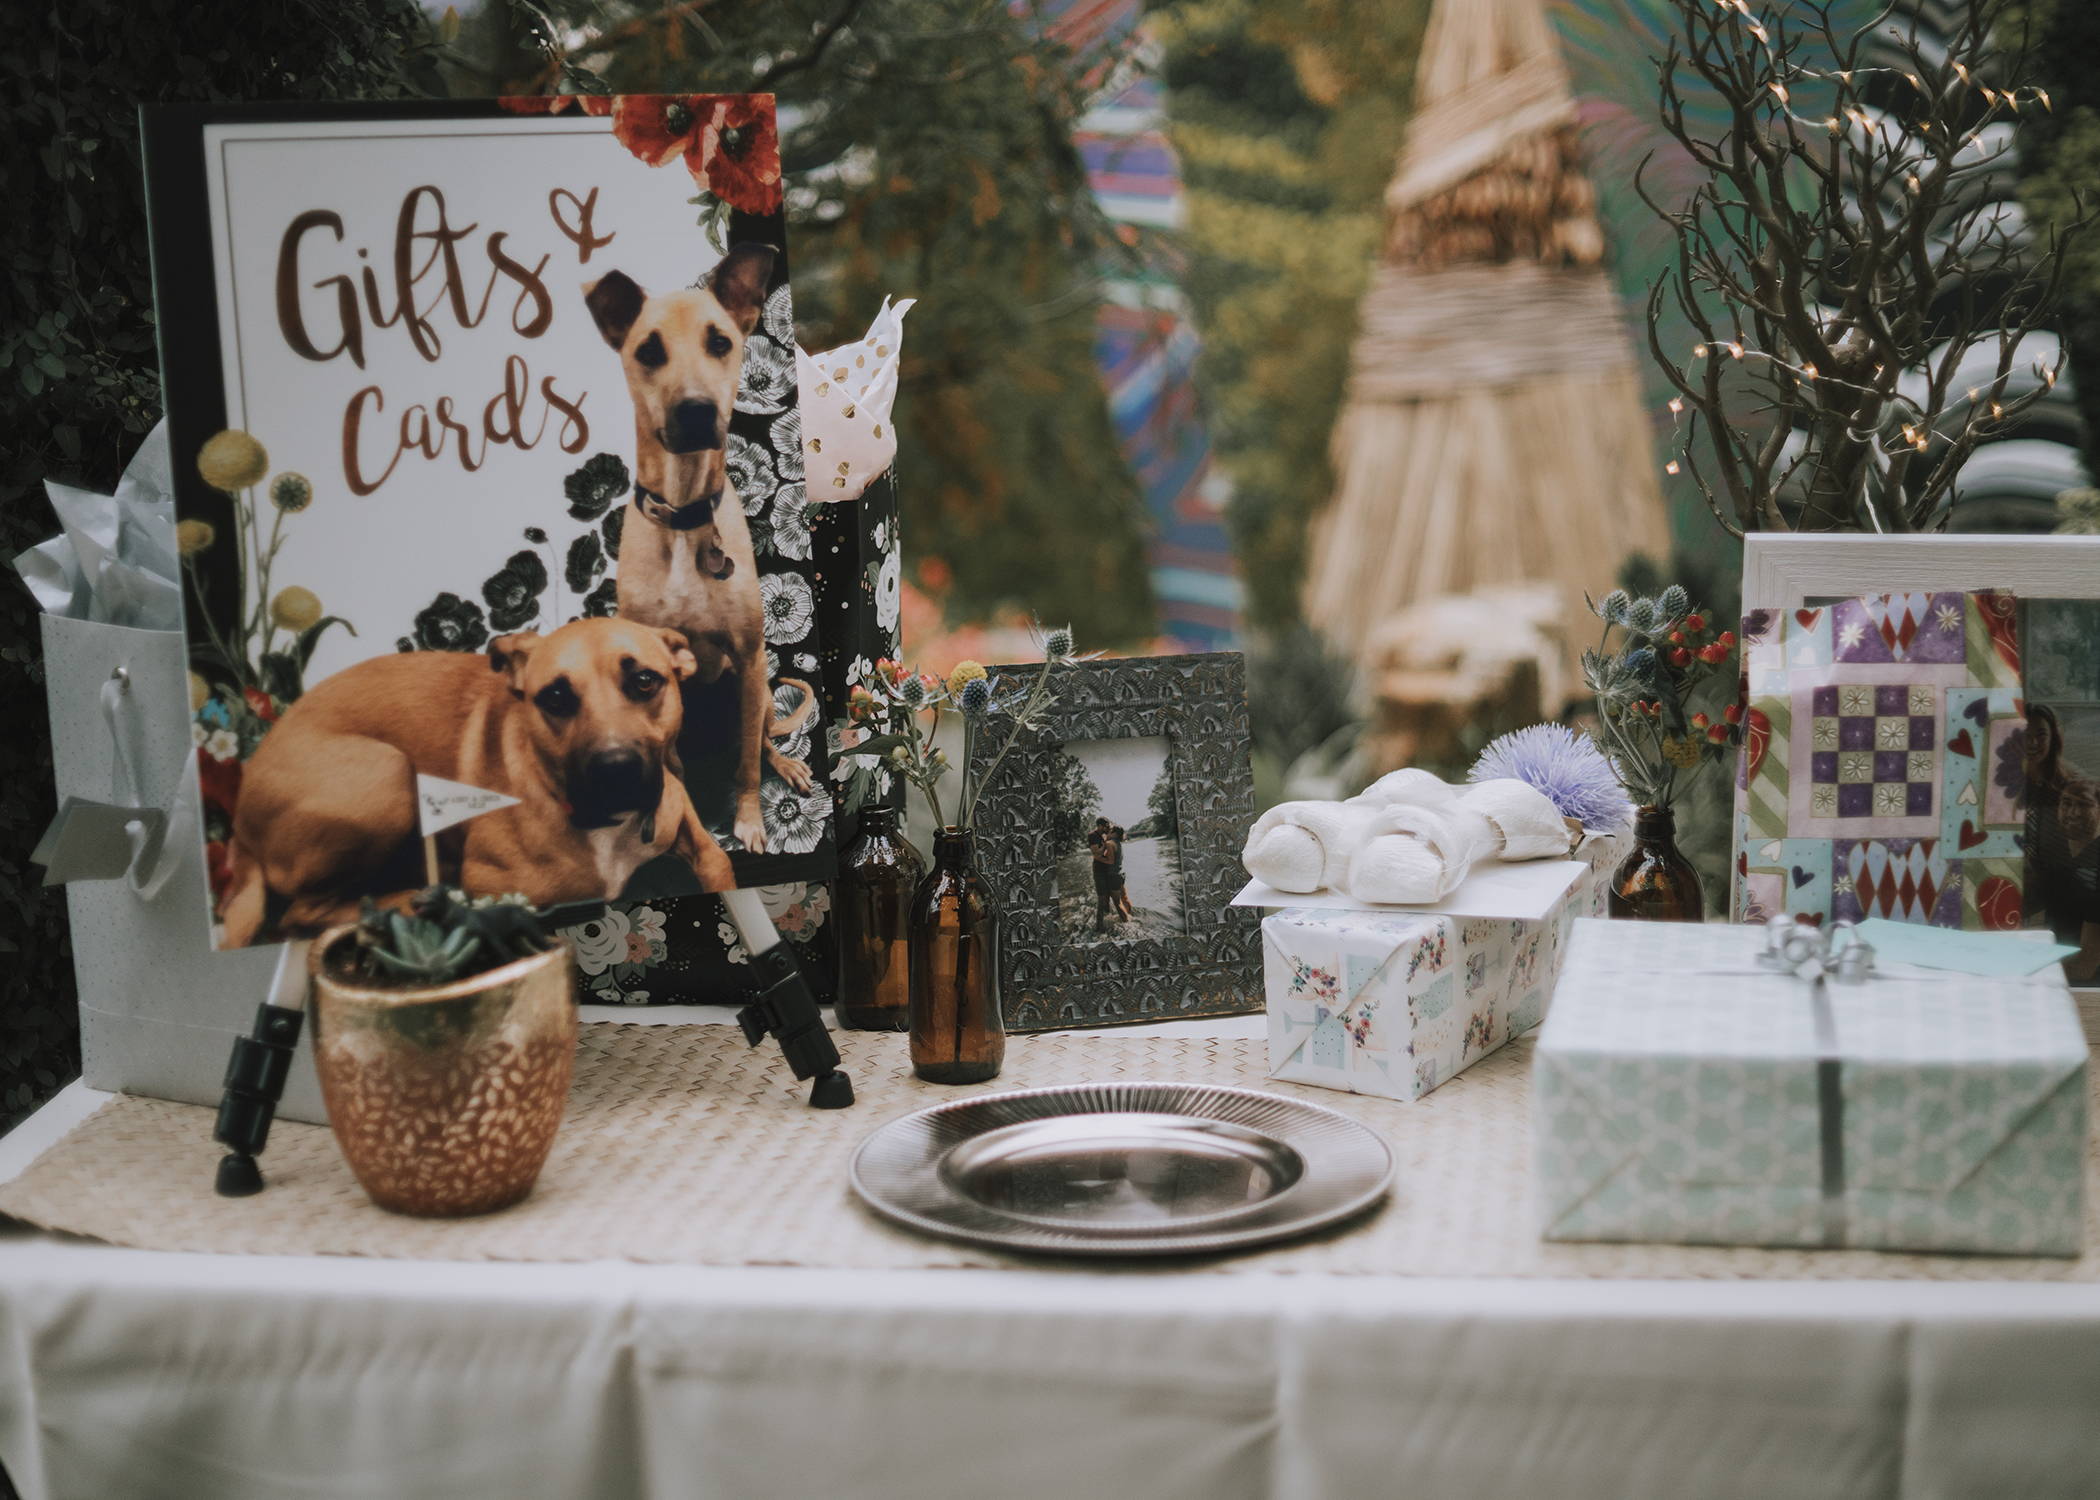 Foellinger-Freimann Botanical Conservatory indianapolis indiana hannah bergman Photography dogs gifts and cards